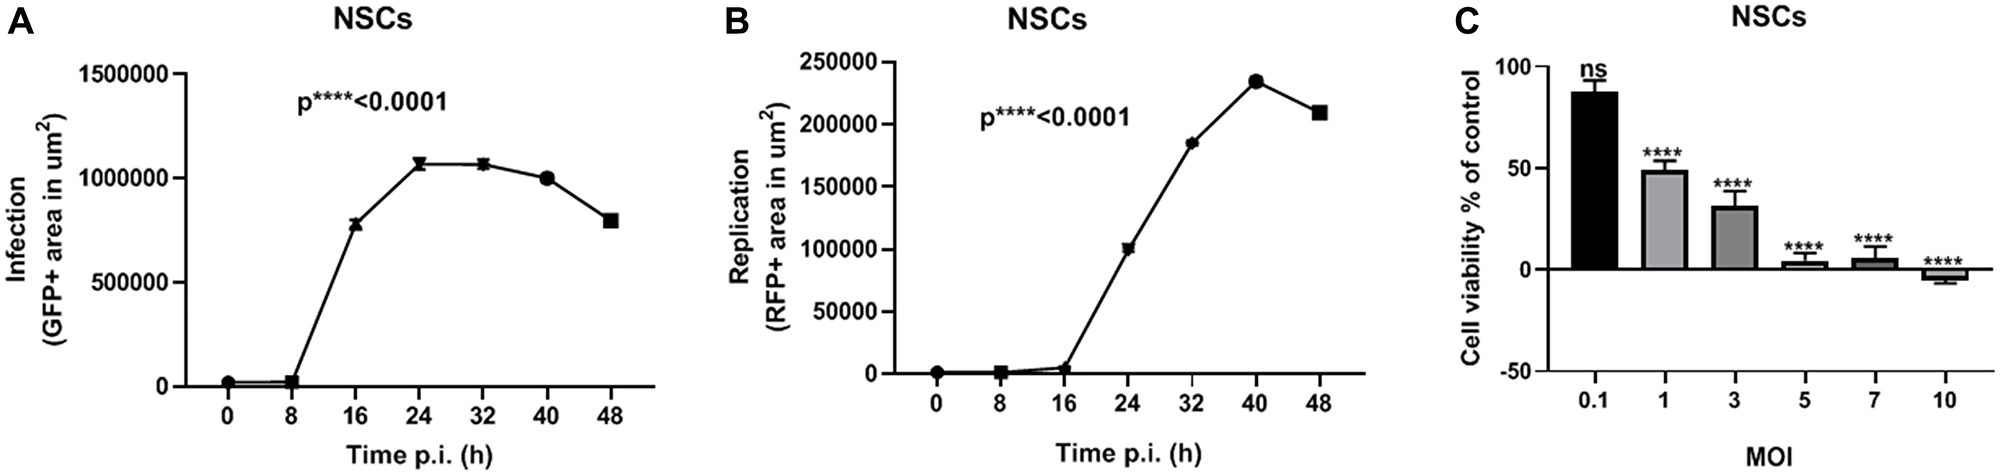 NSCs are permissive to vMyx-GFP-TdTr infection.